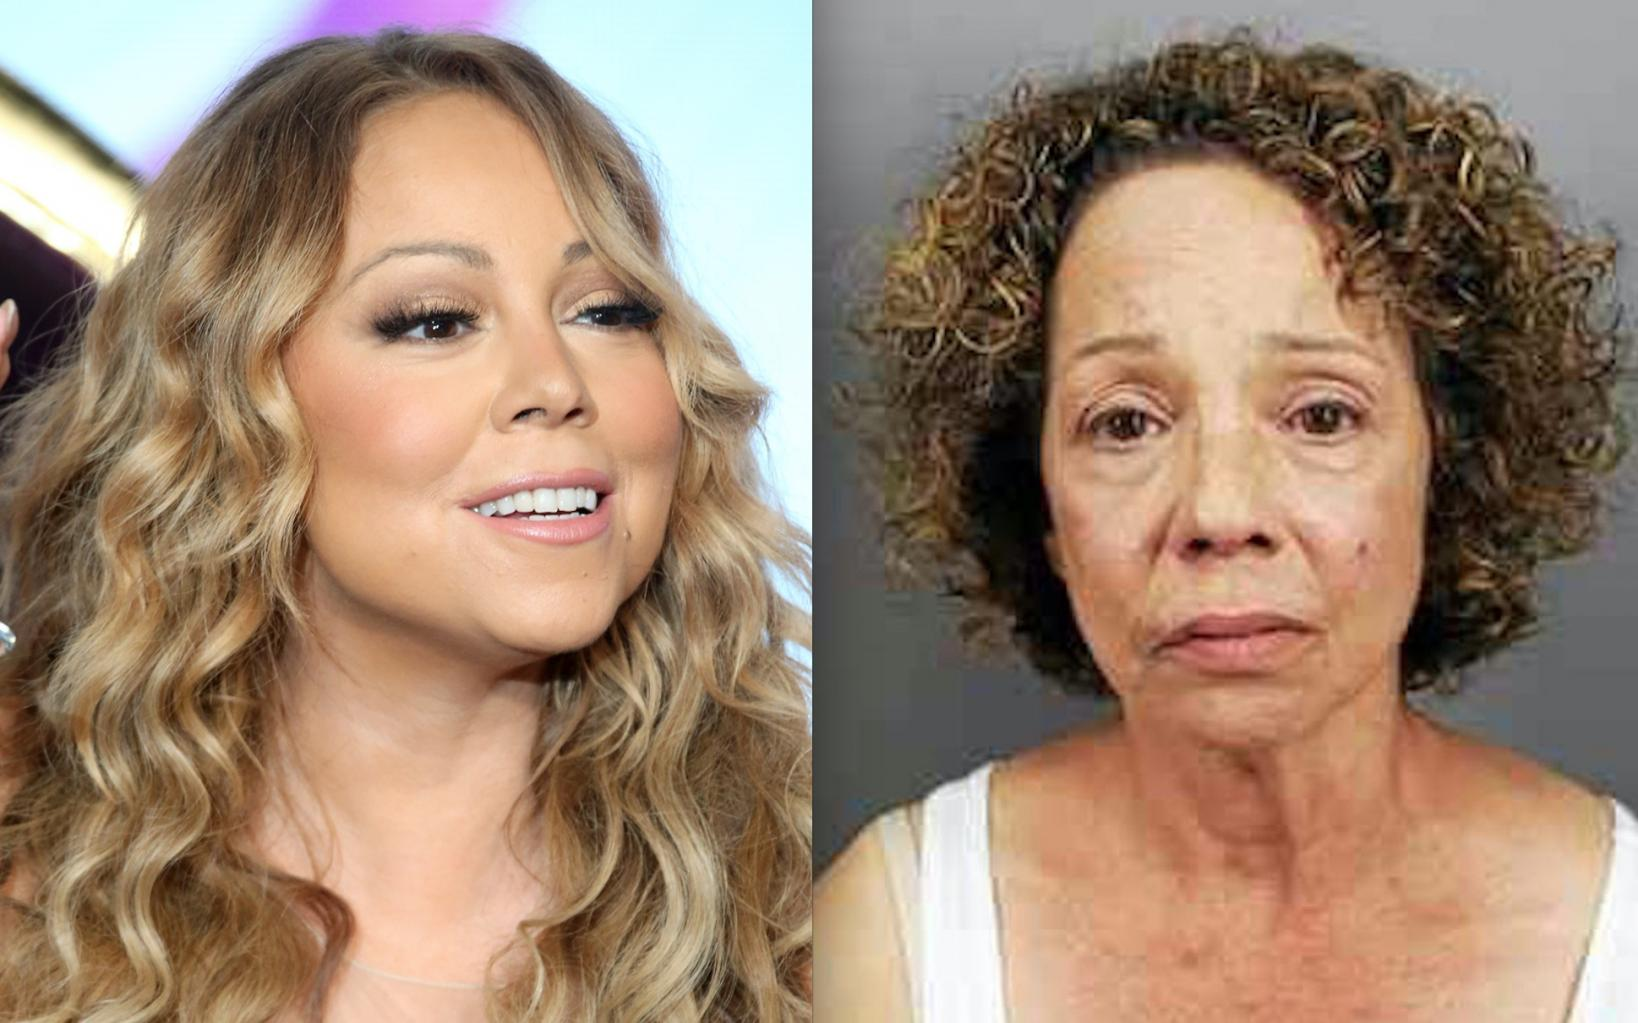 Mariah Carey's Sister Arrested On Suspicion Of Prostitution